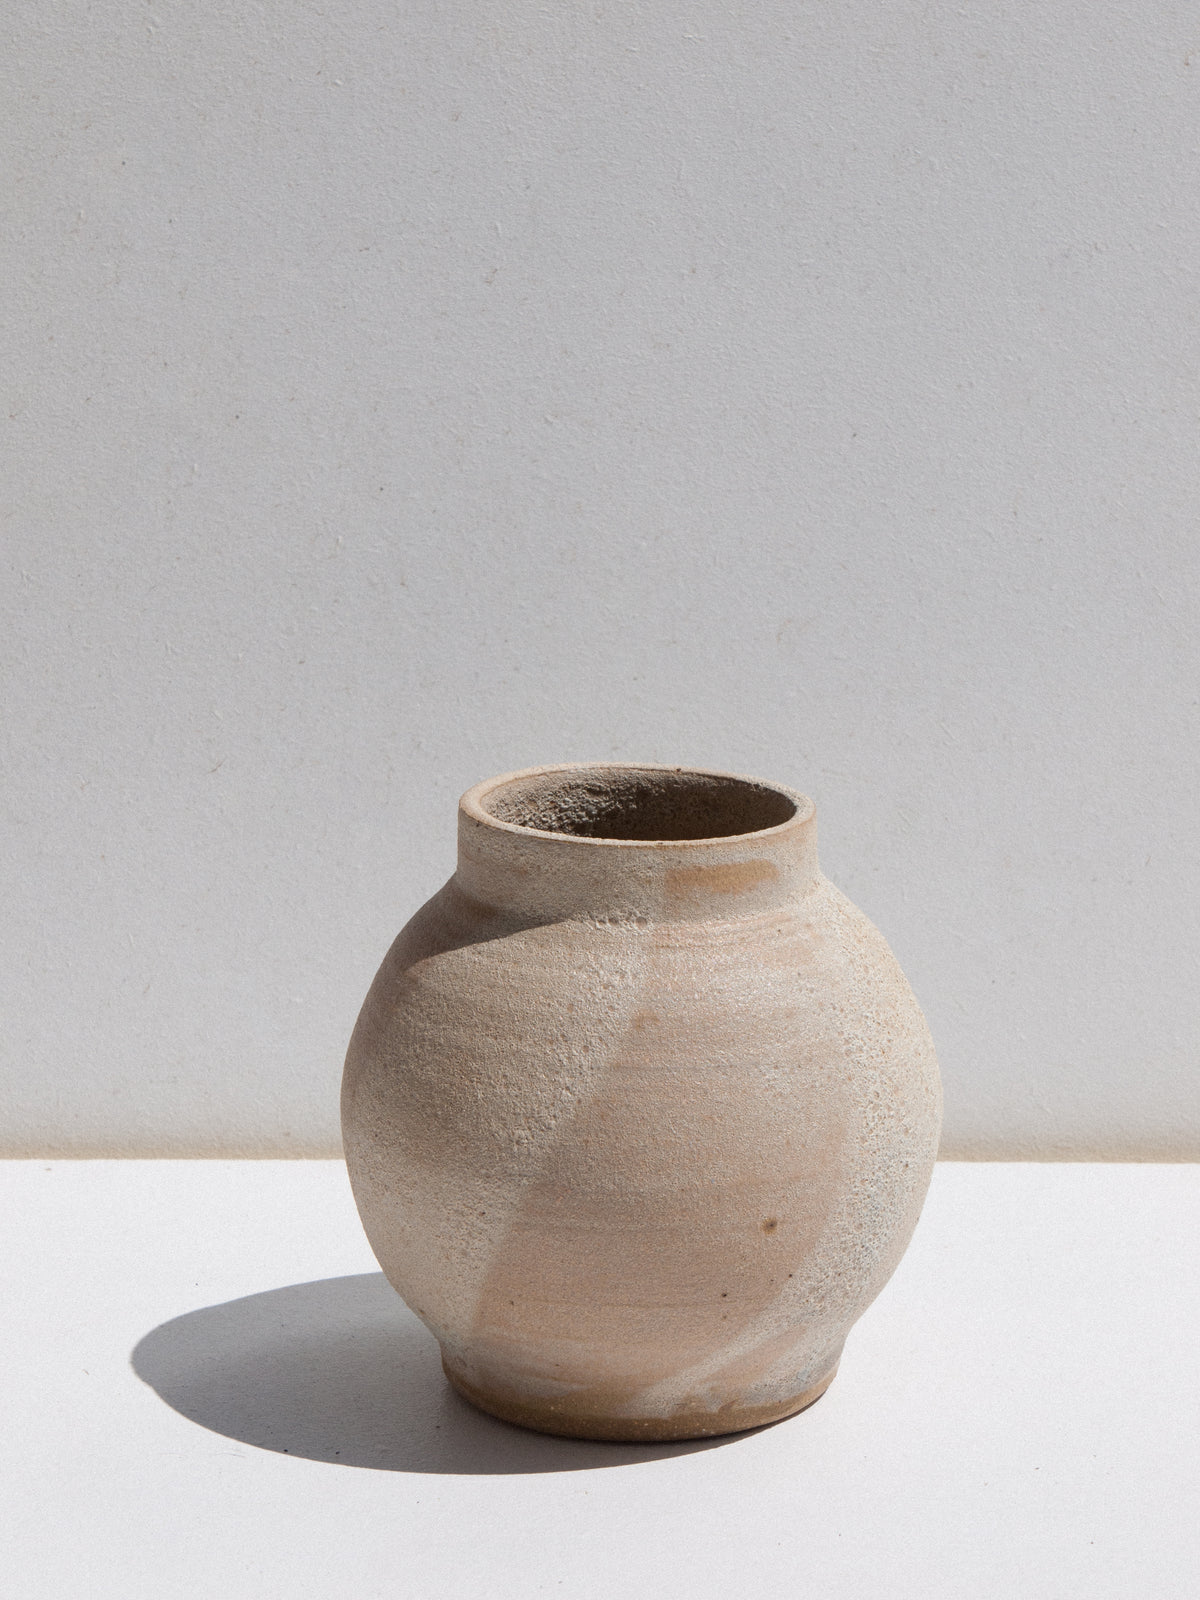 Asobimasu clay ceramic handmade moon vase with textural glaze on Maker's Mrkt makers market Melbourne